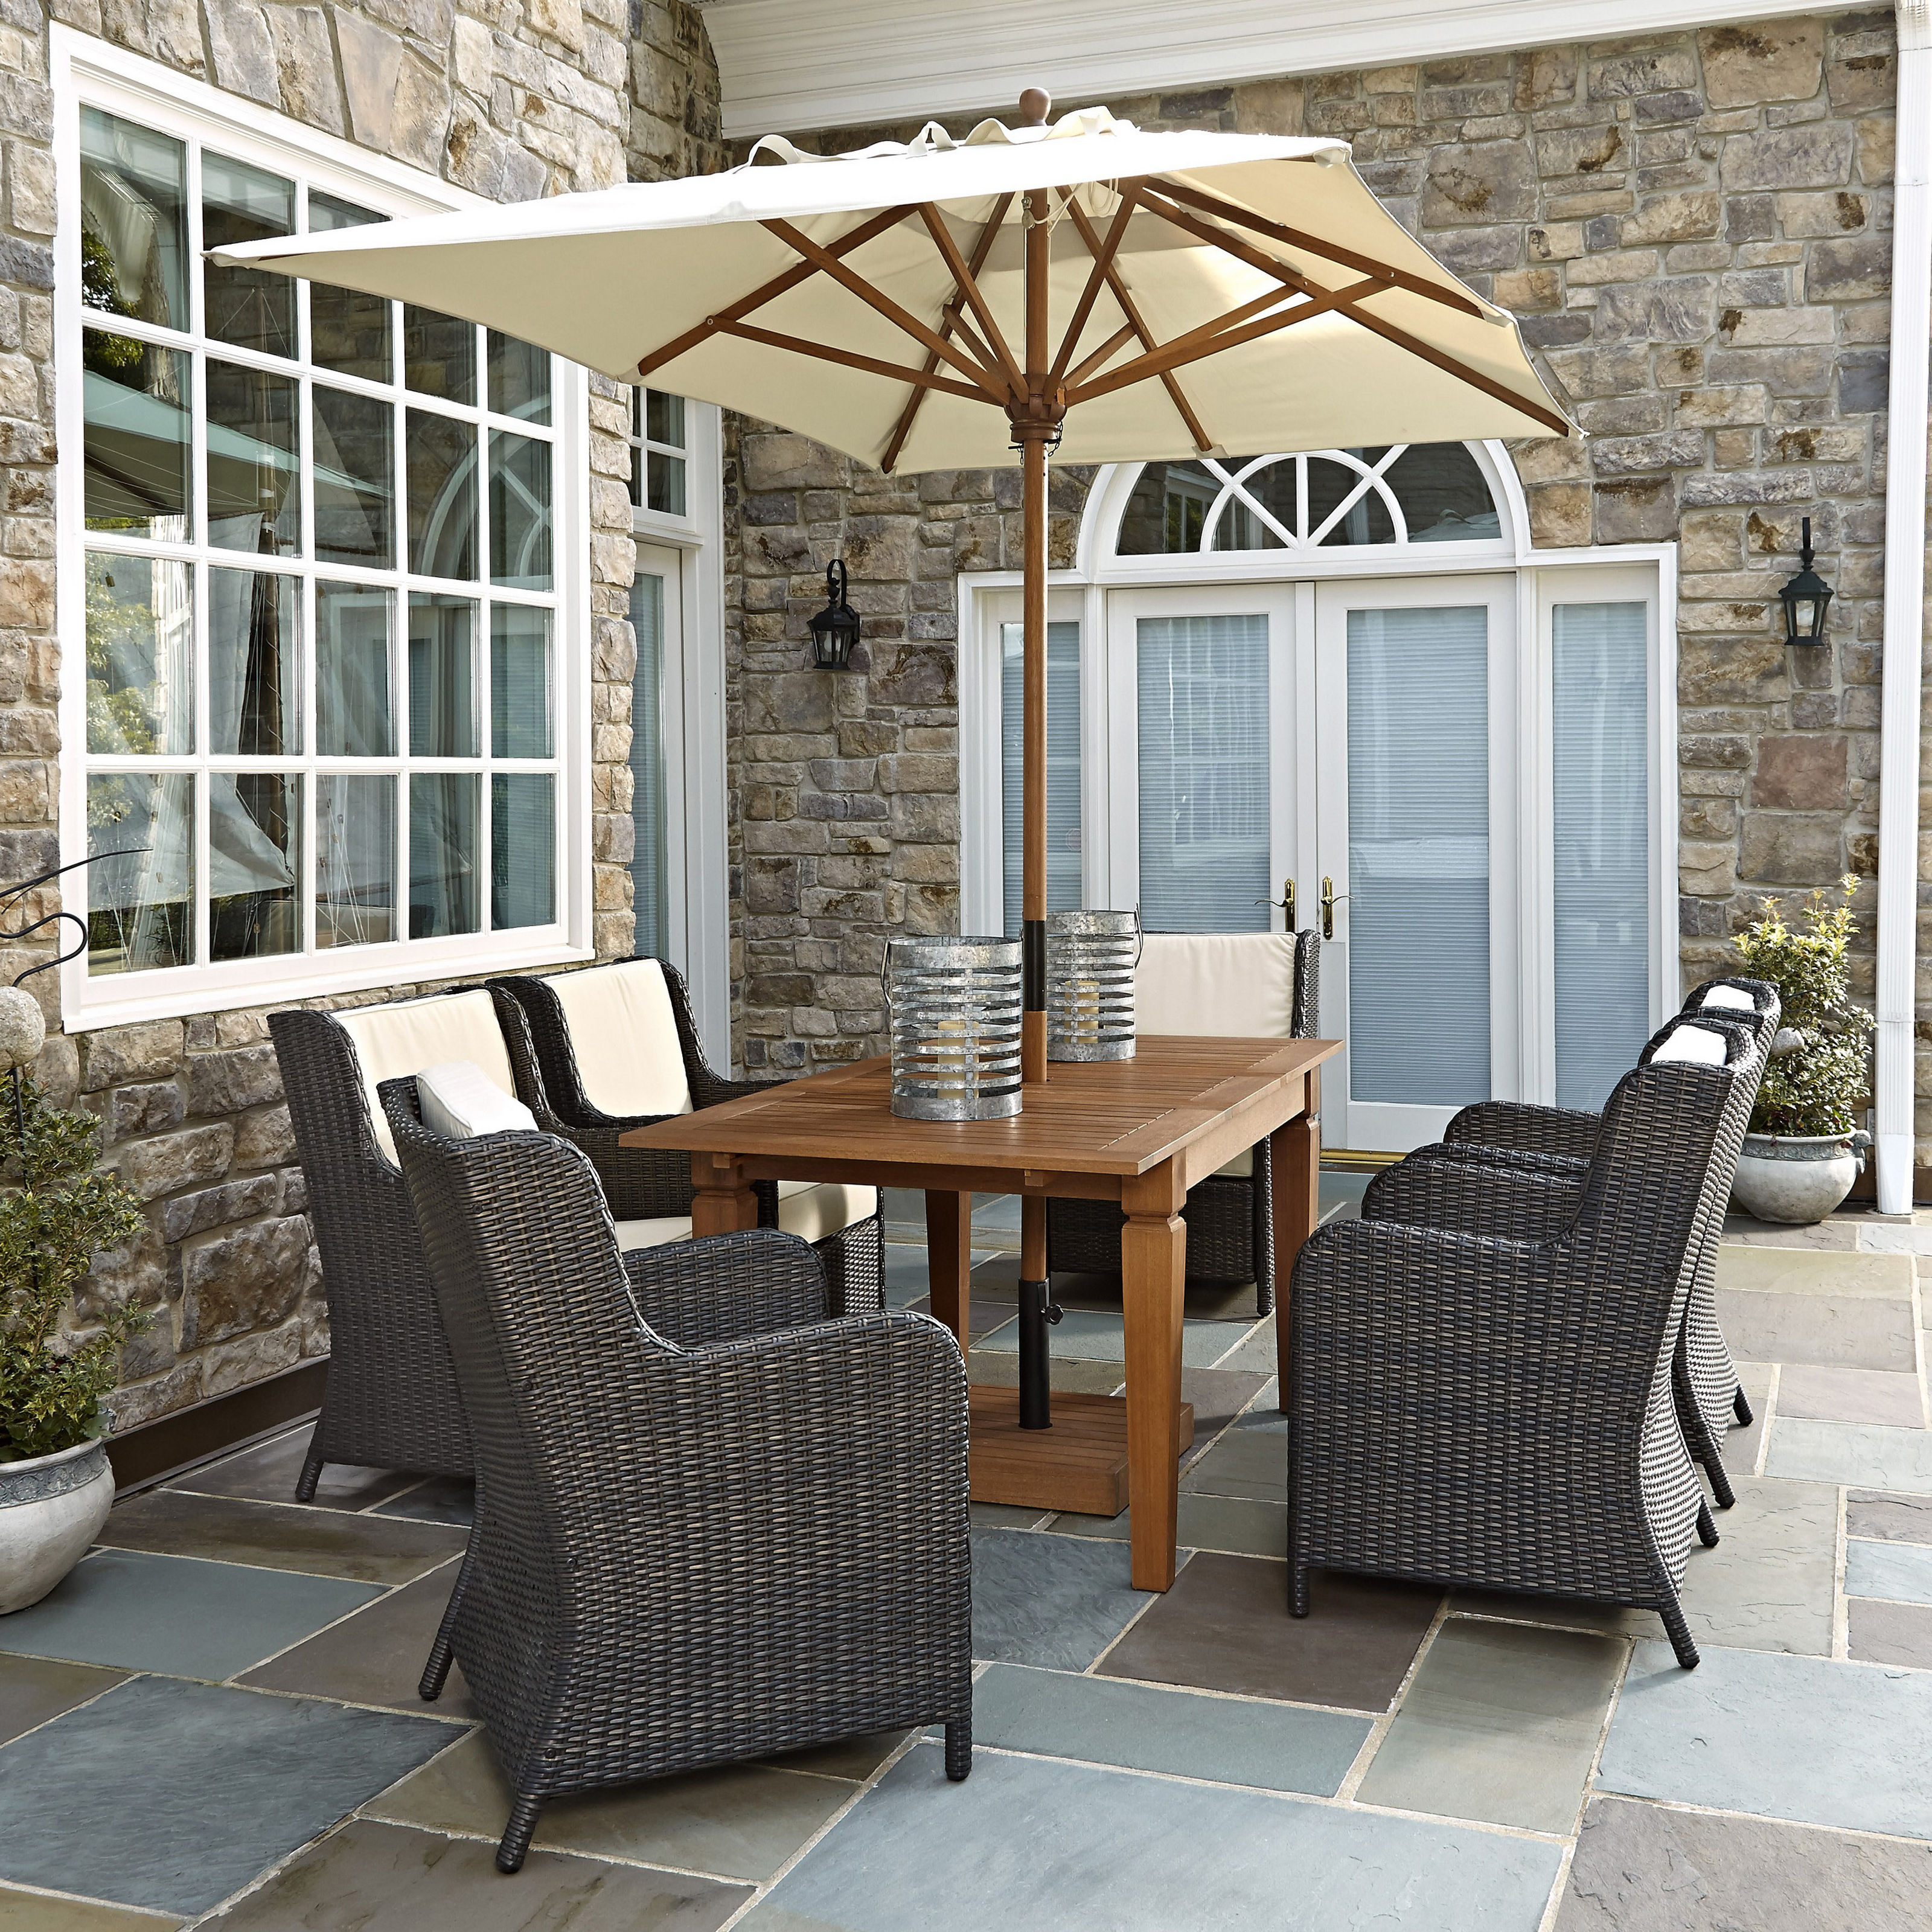 Home Styles Bali Hai 7 Piece Outdoor Dining Set With Umbrella Patio Dining